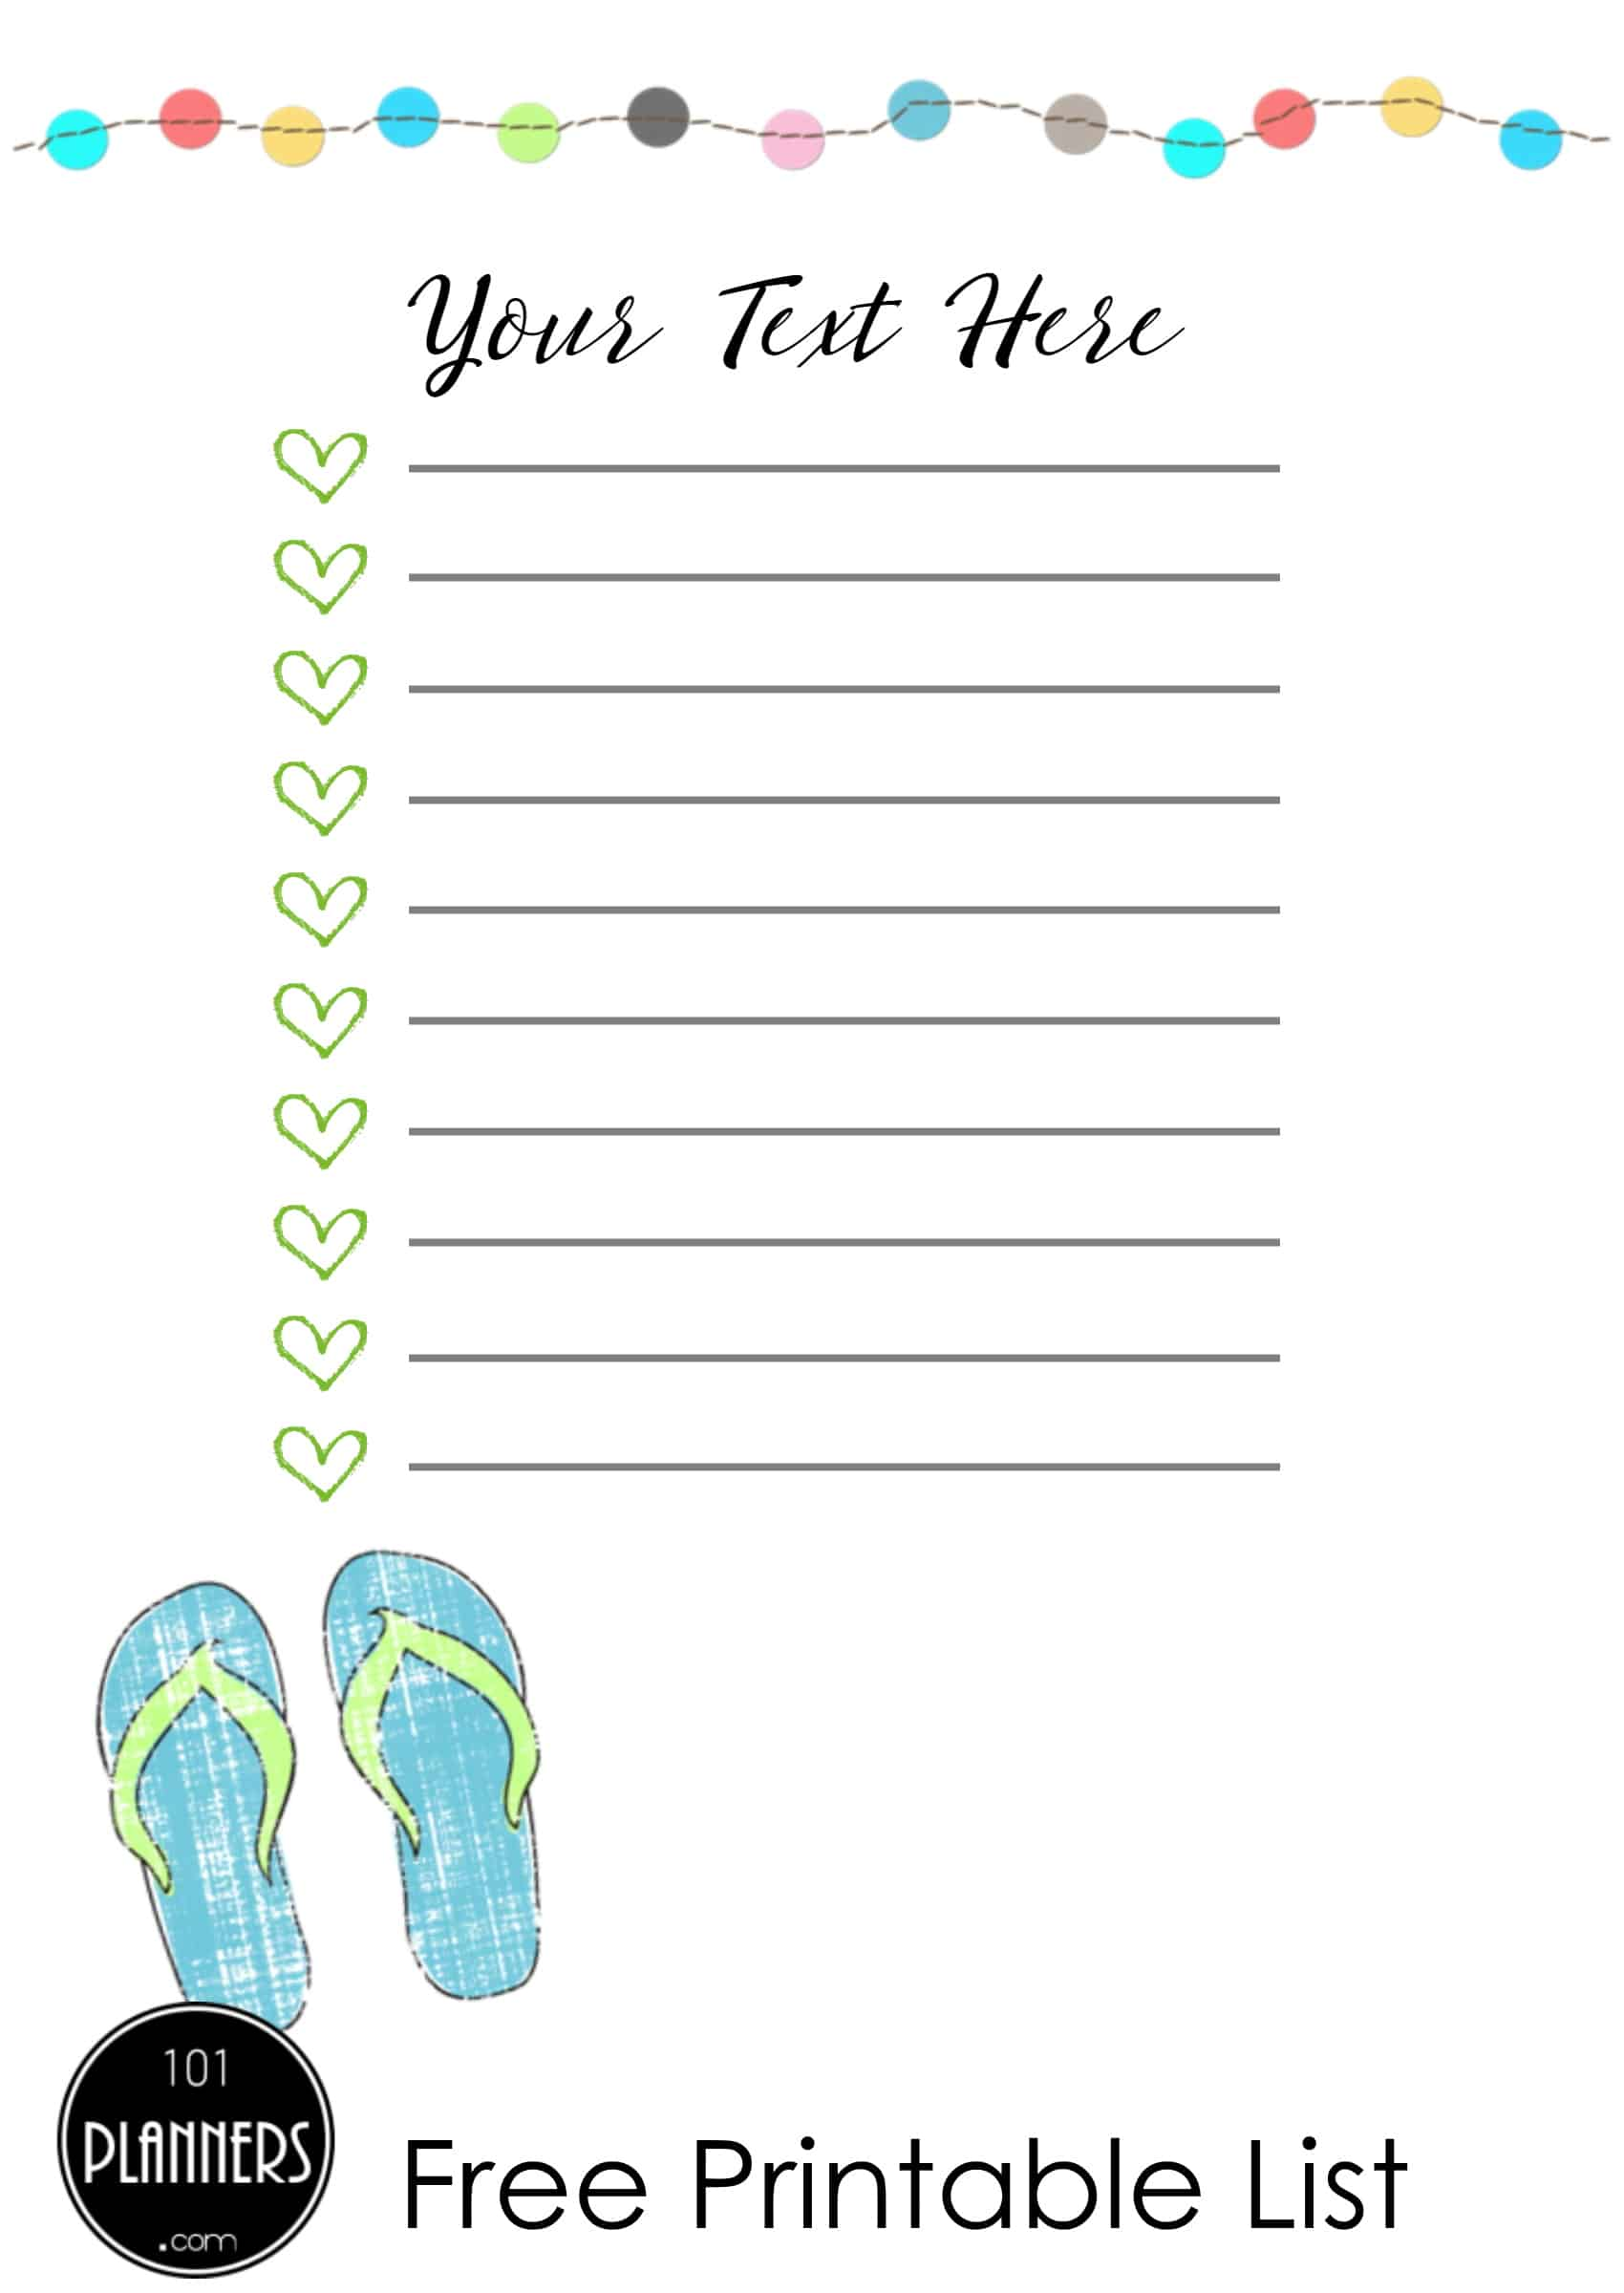 Cute To Do List Template Word from www.101planners.com